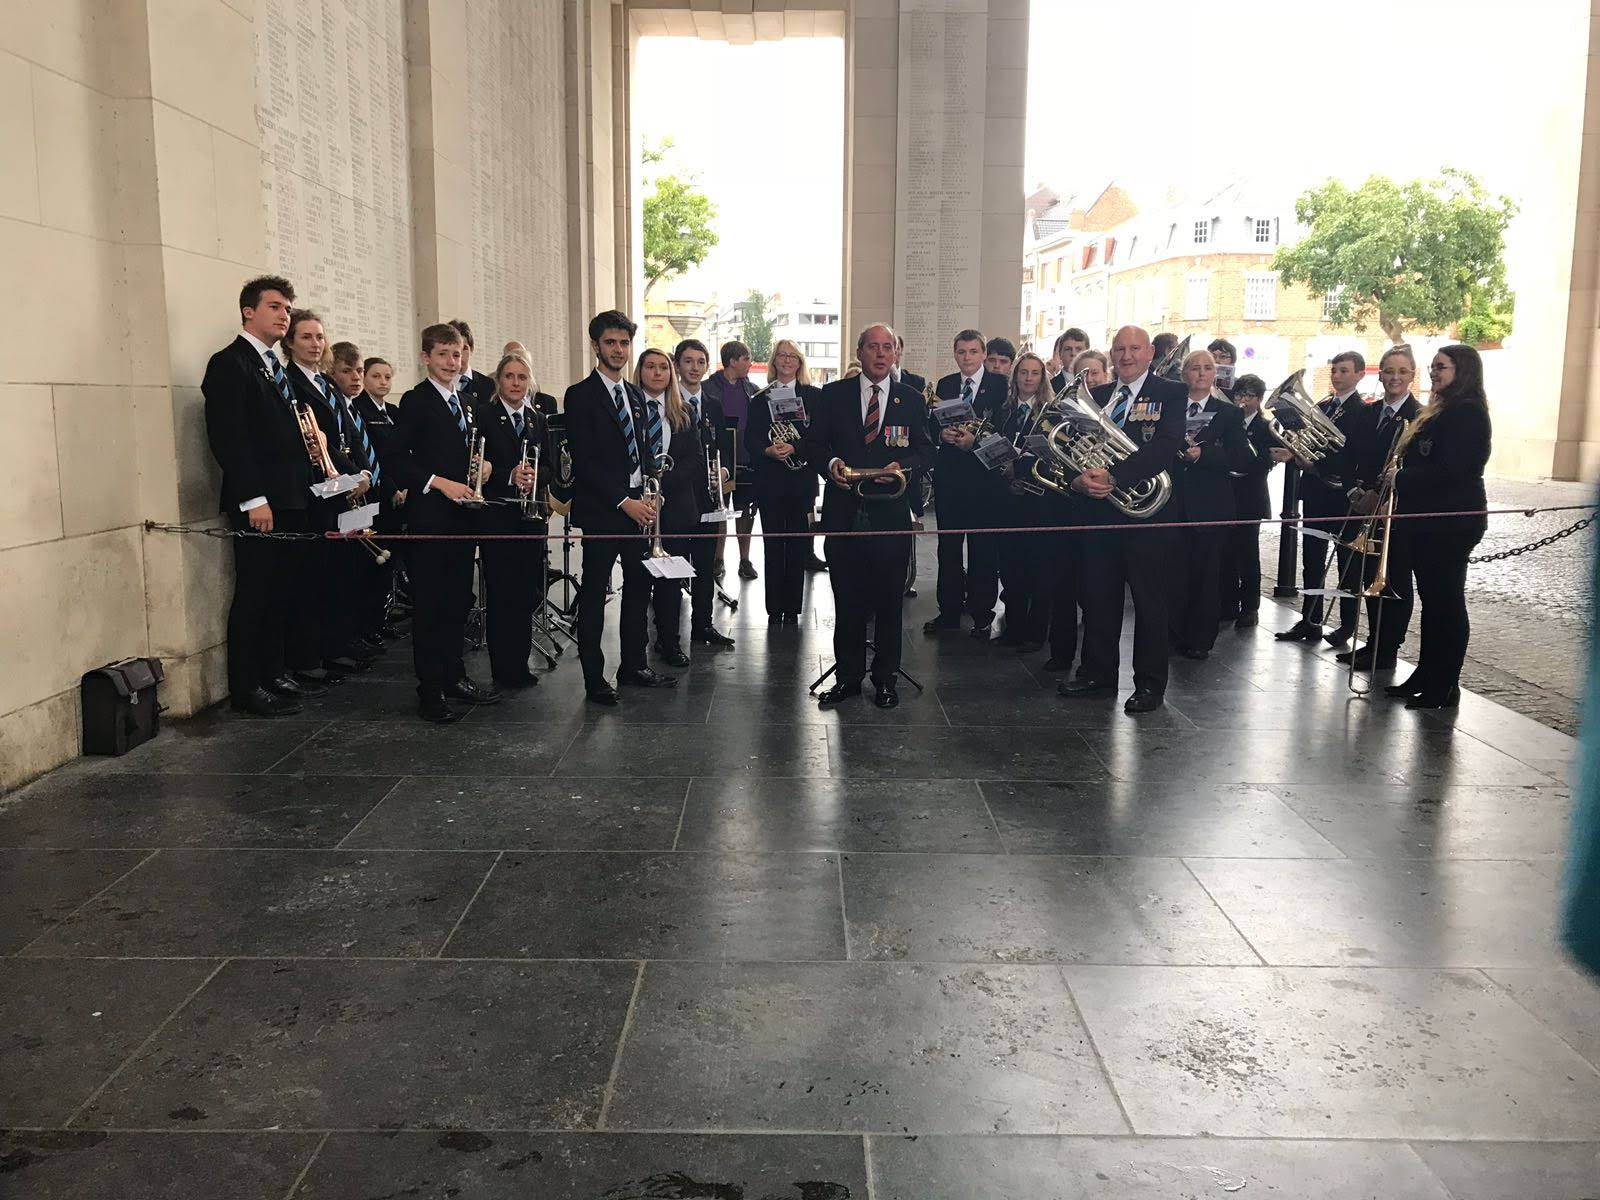 Band at Menin Gate Alan Pope with bugle